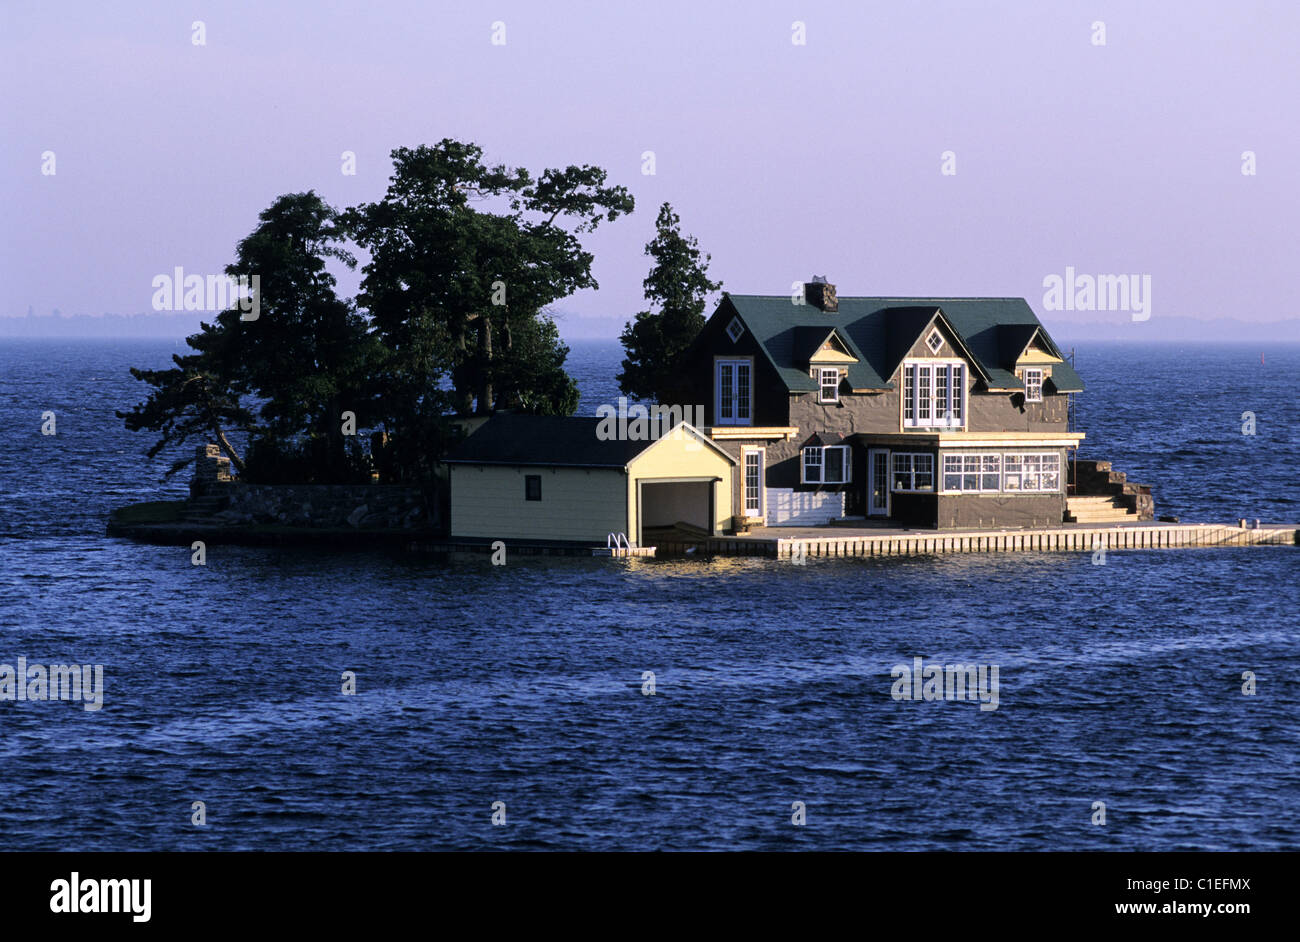 Where Is Thousand Islands Ontario